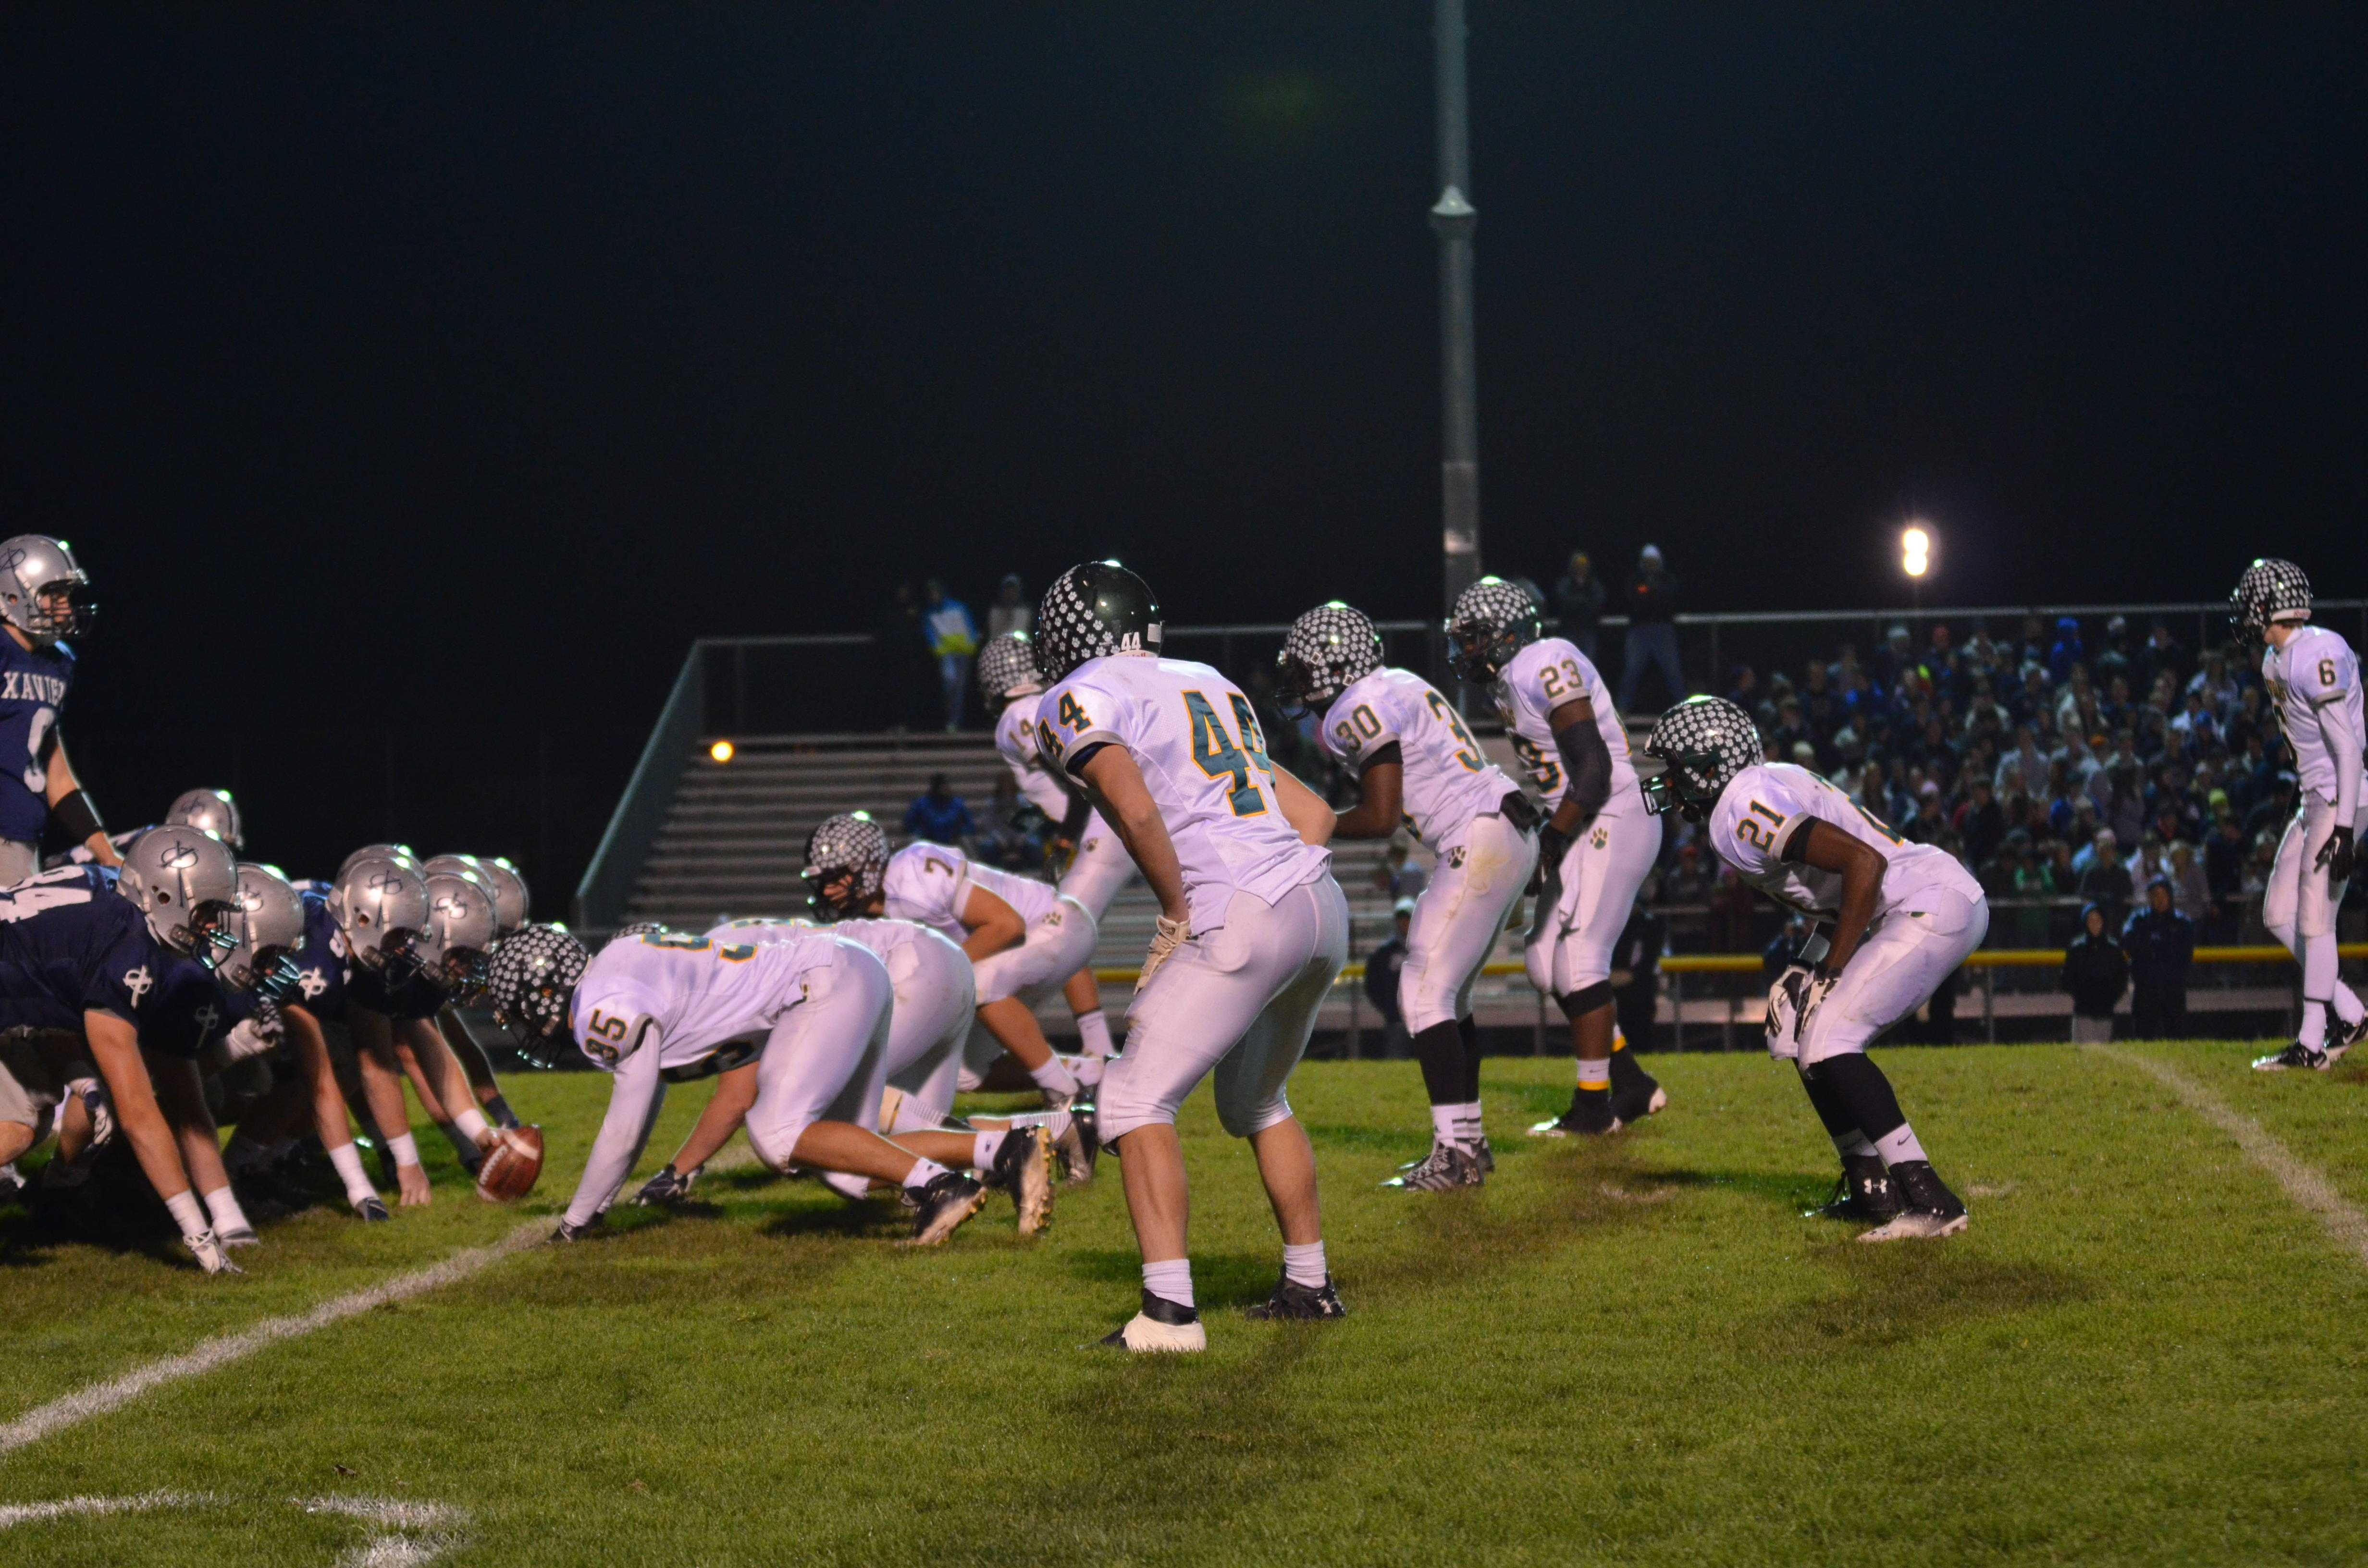 Kennedy plays their homecoming game tonight at Kingston.